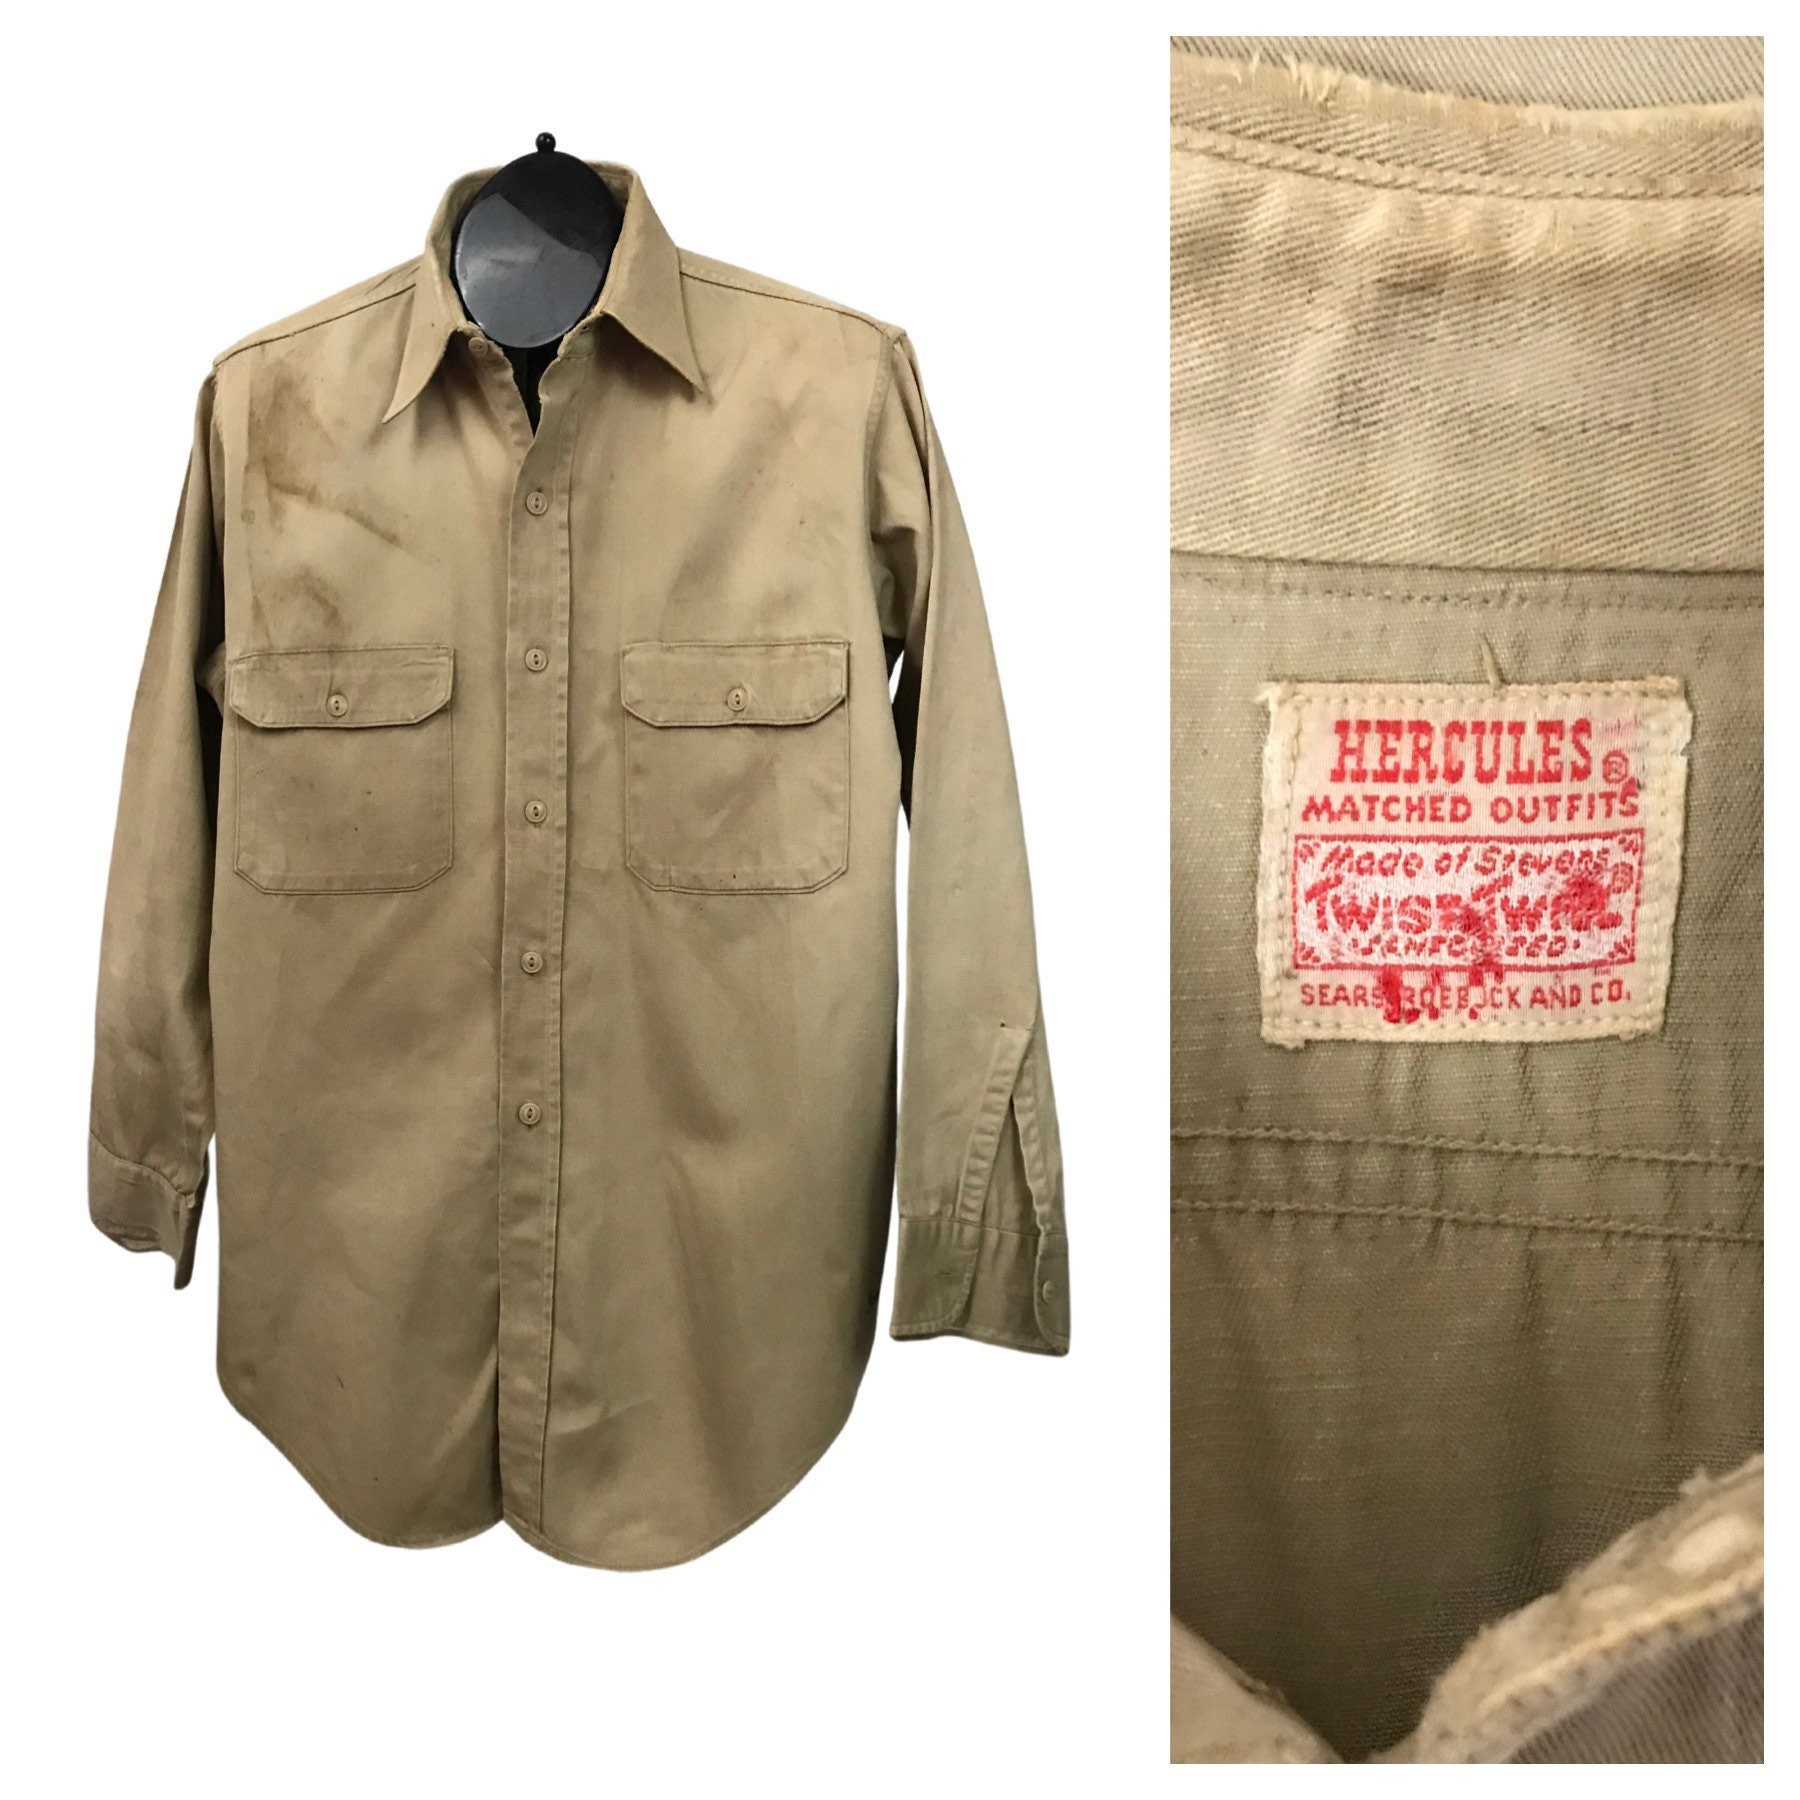 New 1930s Mens Fashion Ties 1930S Work Wear Shirt30S Distressed Hercules Cotton Button Up Mens Large $25.00 AT vintagedancer.com